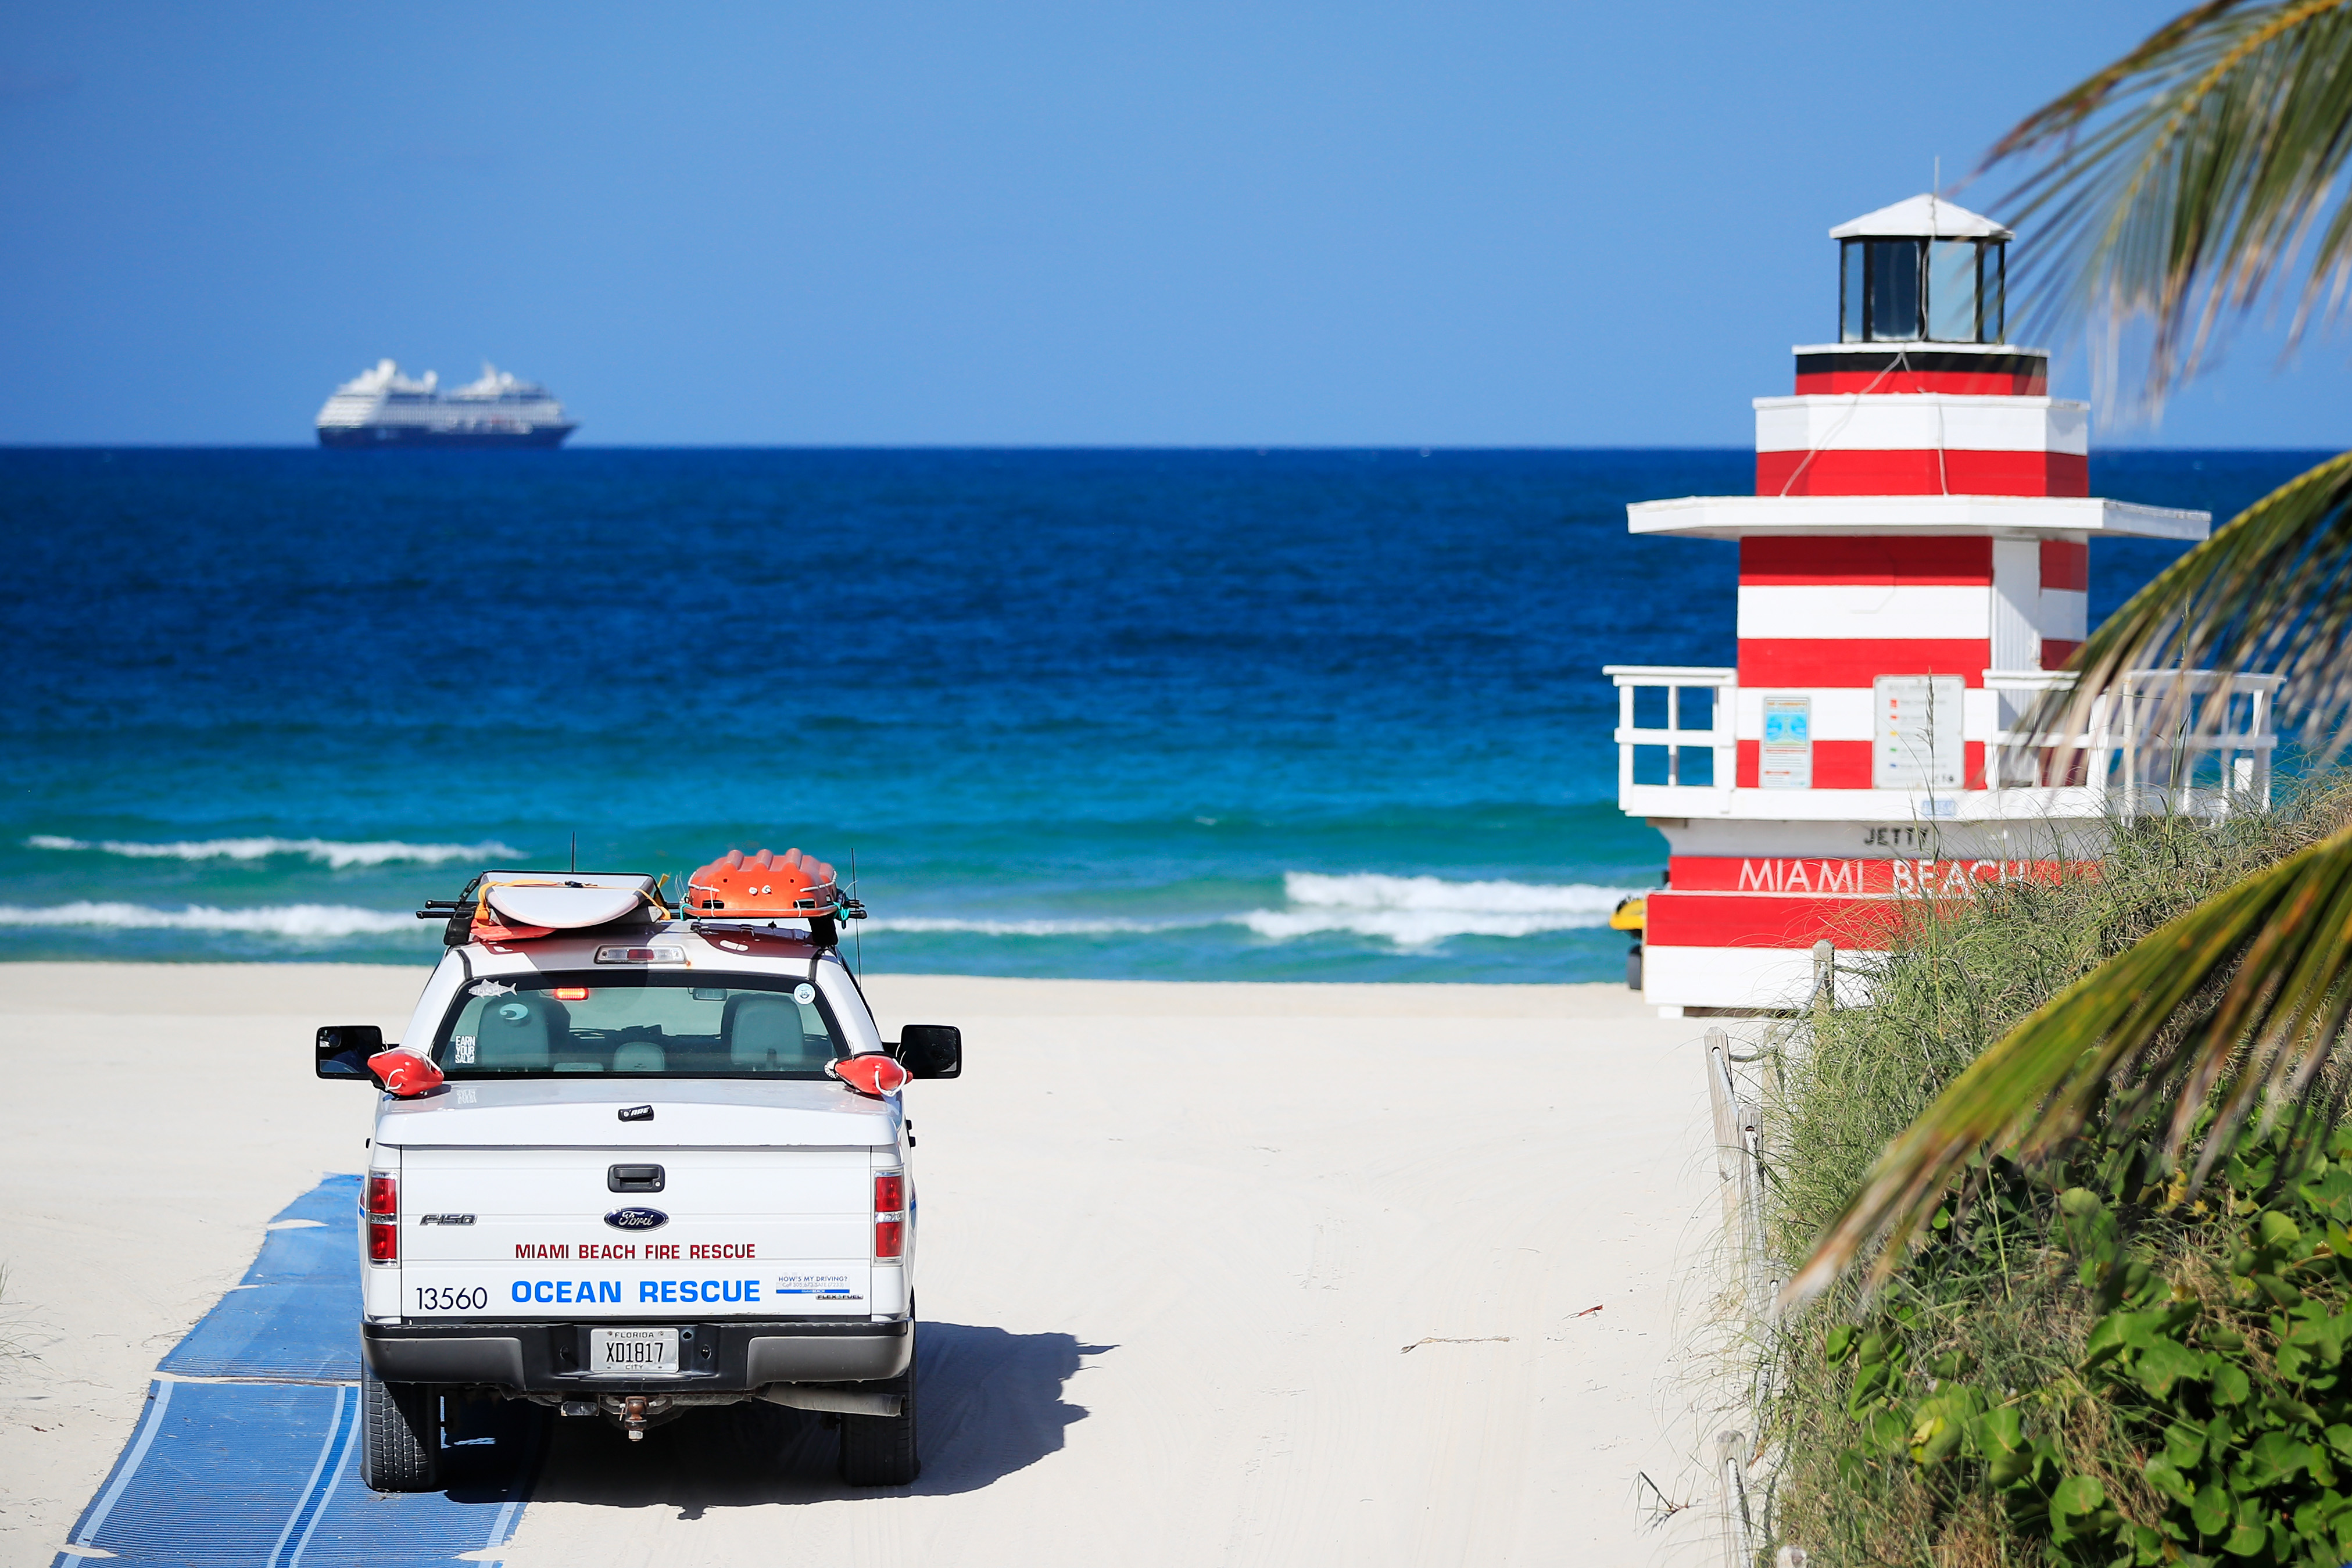 A Miami Beach Fire Rescue vehicle drives onto the beach in South Pointe in Miami Beach, Florida on April 29.